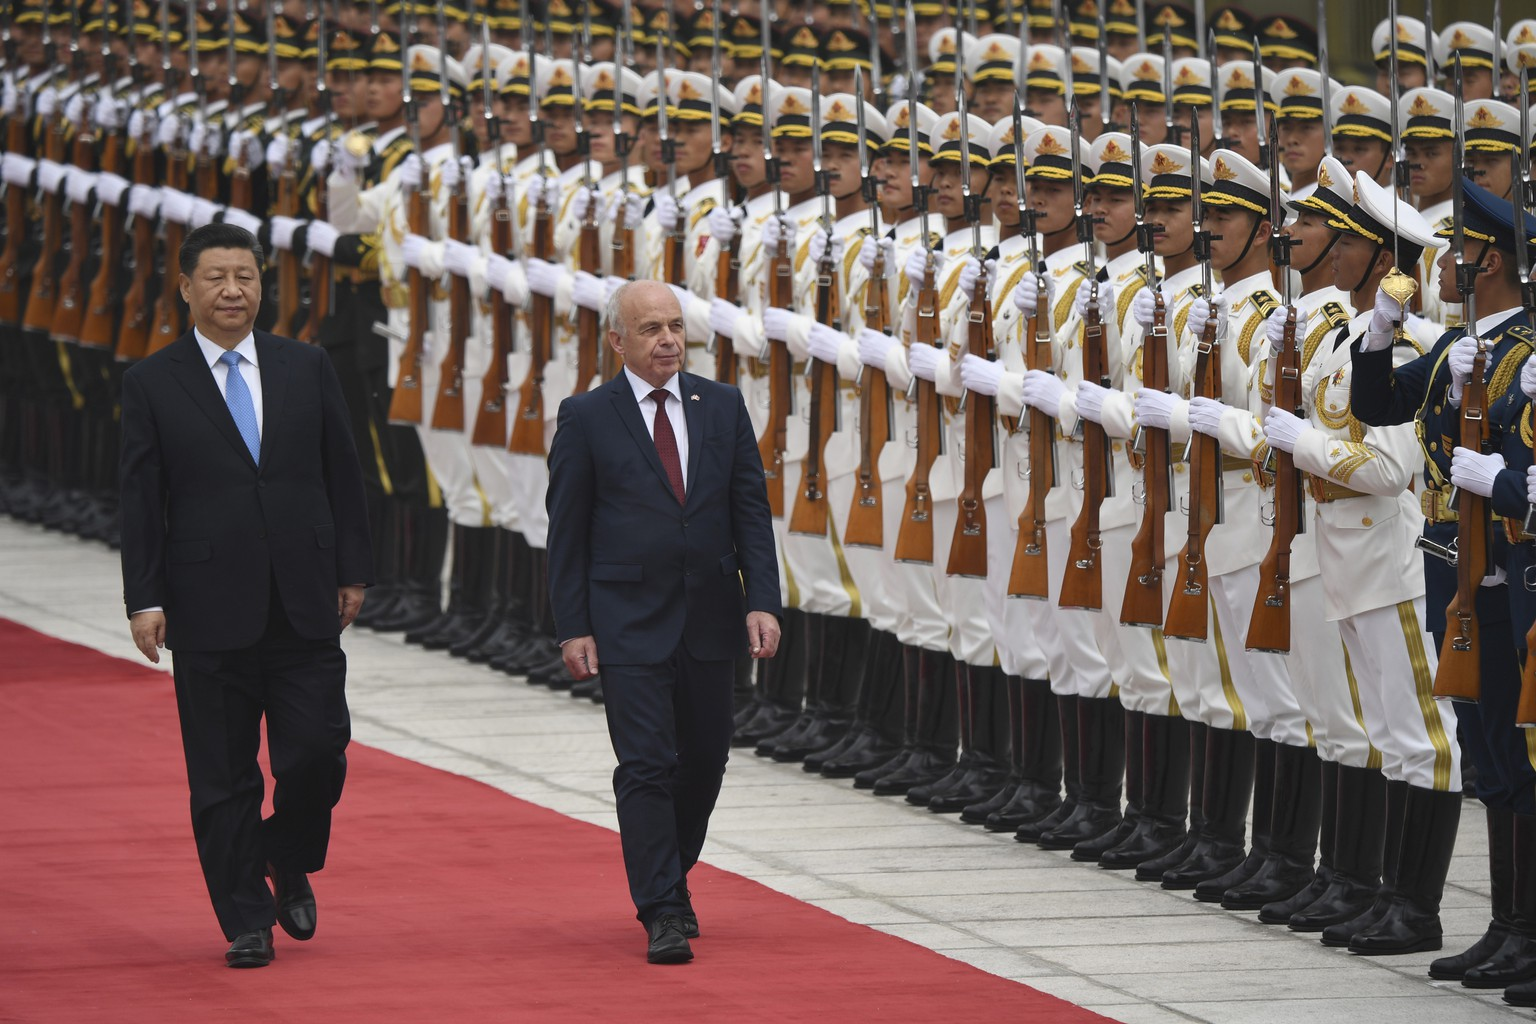 epa07535657 Switzerland's President Ueli Maurer (C) and China's President Xi Jinping (L) review honor guards during a welcome ceremony at the Great Hall of the People in Beijing, China, 29 April 2019.  EPA/MADOKA IKEGAMI / POOL